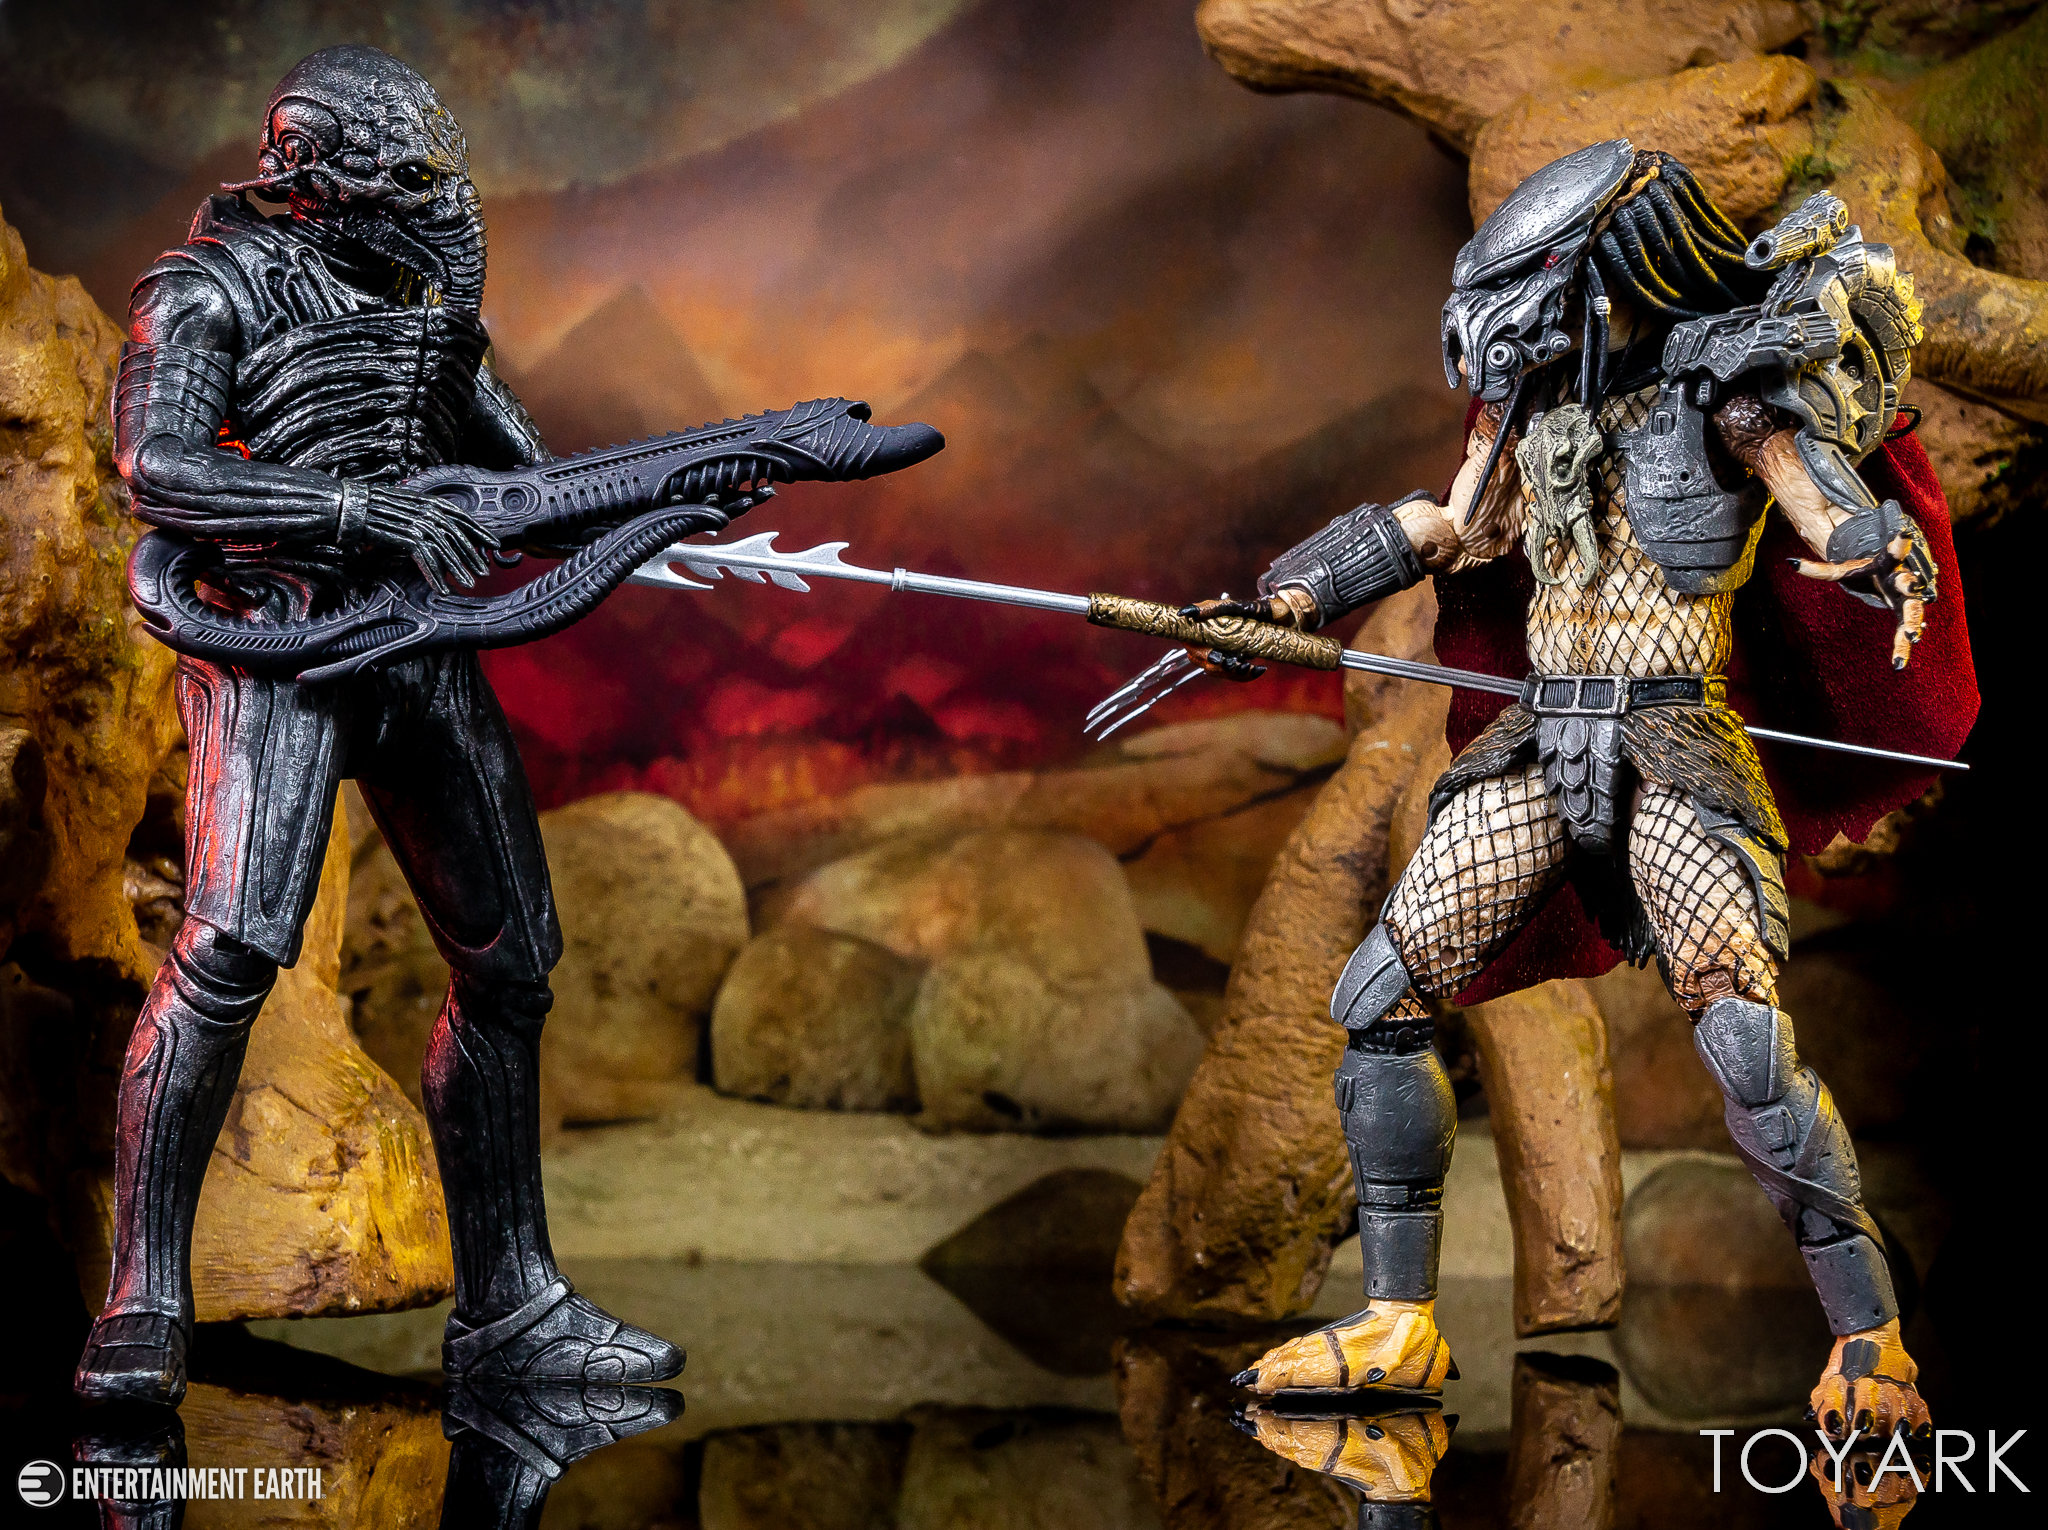 https://news.toyark.com/wp-content/uploads/sites/4/2018/11/NECA-Ultimate-Ahab-Predator-037.jpg